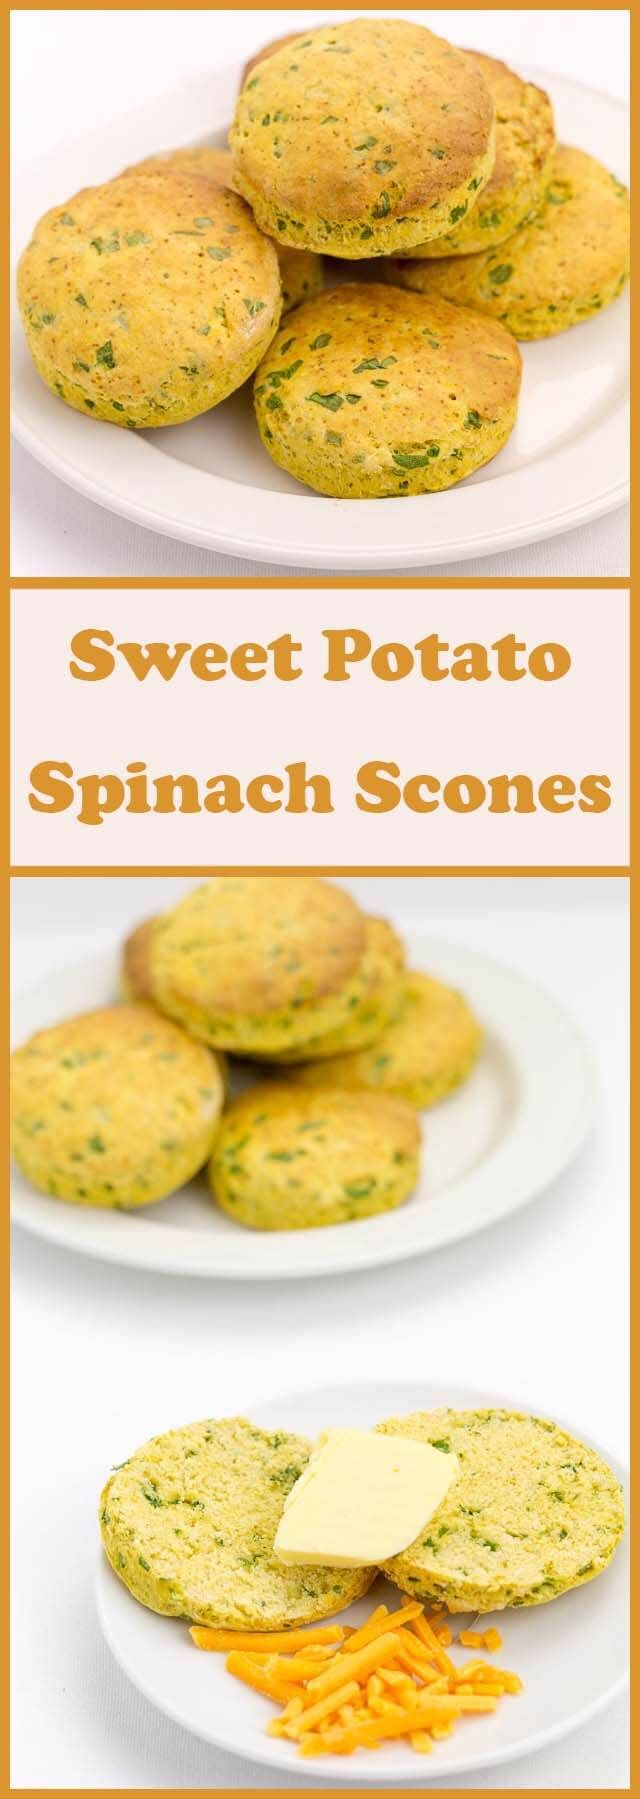 These sweet potato spinach scones are a great way of using up leftover ingredients and are also an excellent snack or a weekend breakfast option. Absolutely delicious served warm with a little butter!